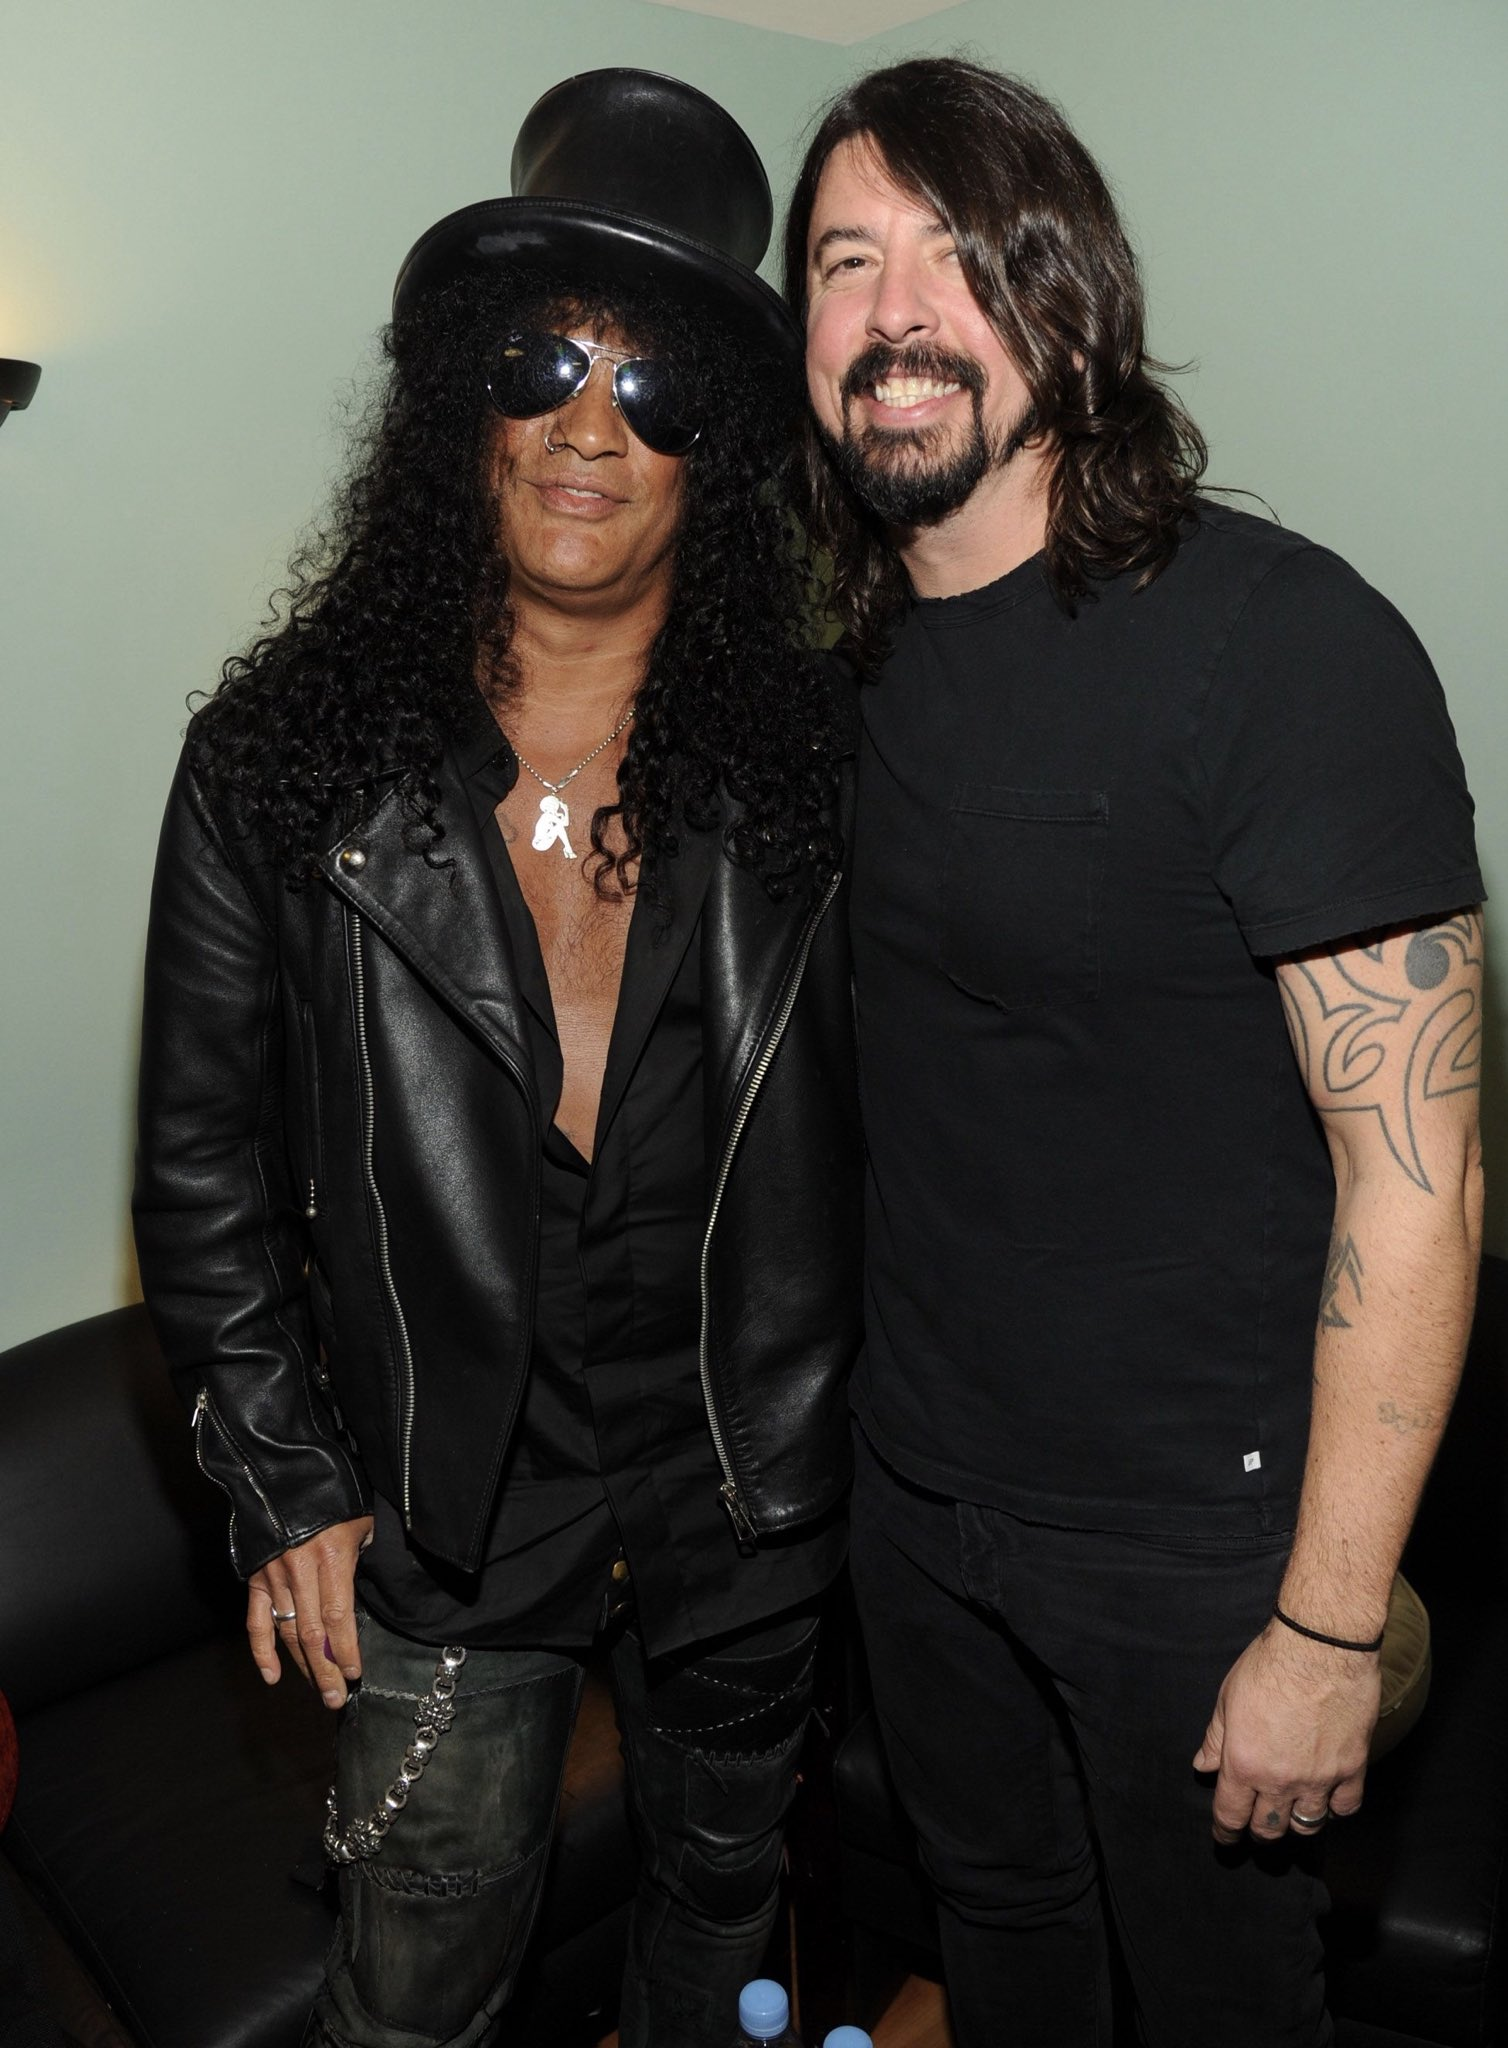 Happy Birthday Dave Grohl!       Credits to the owners